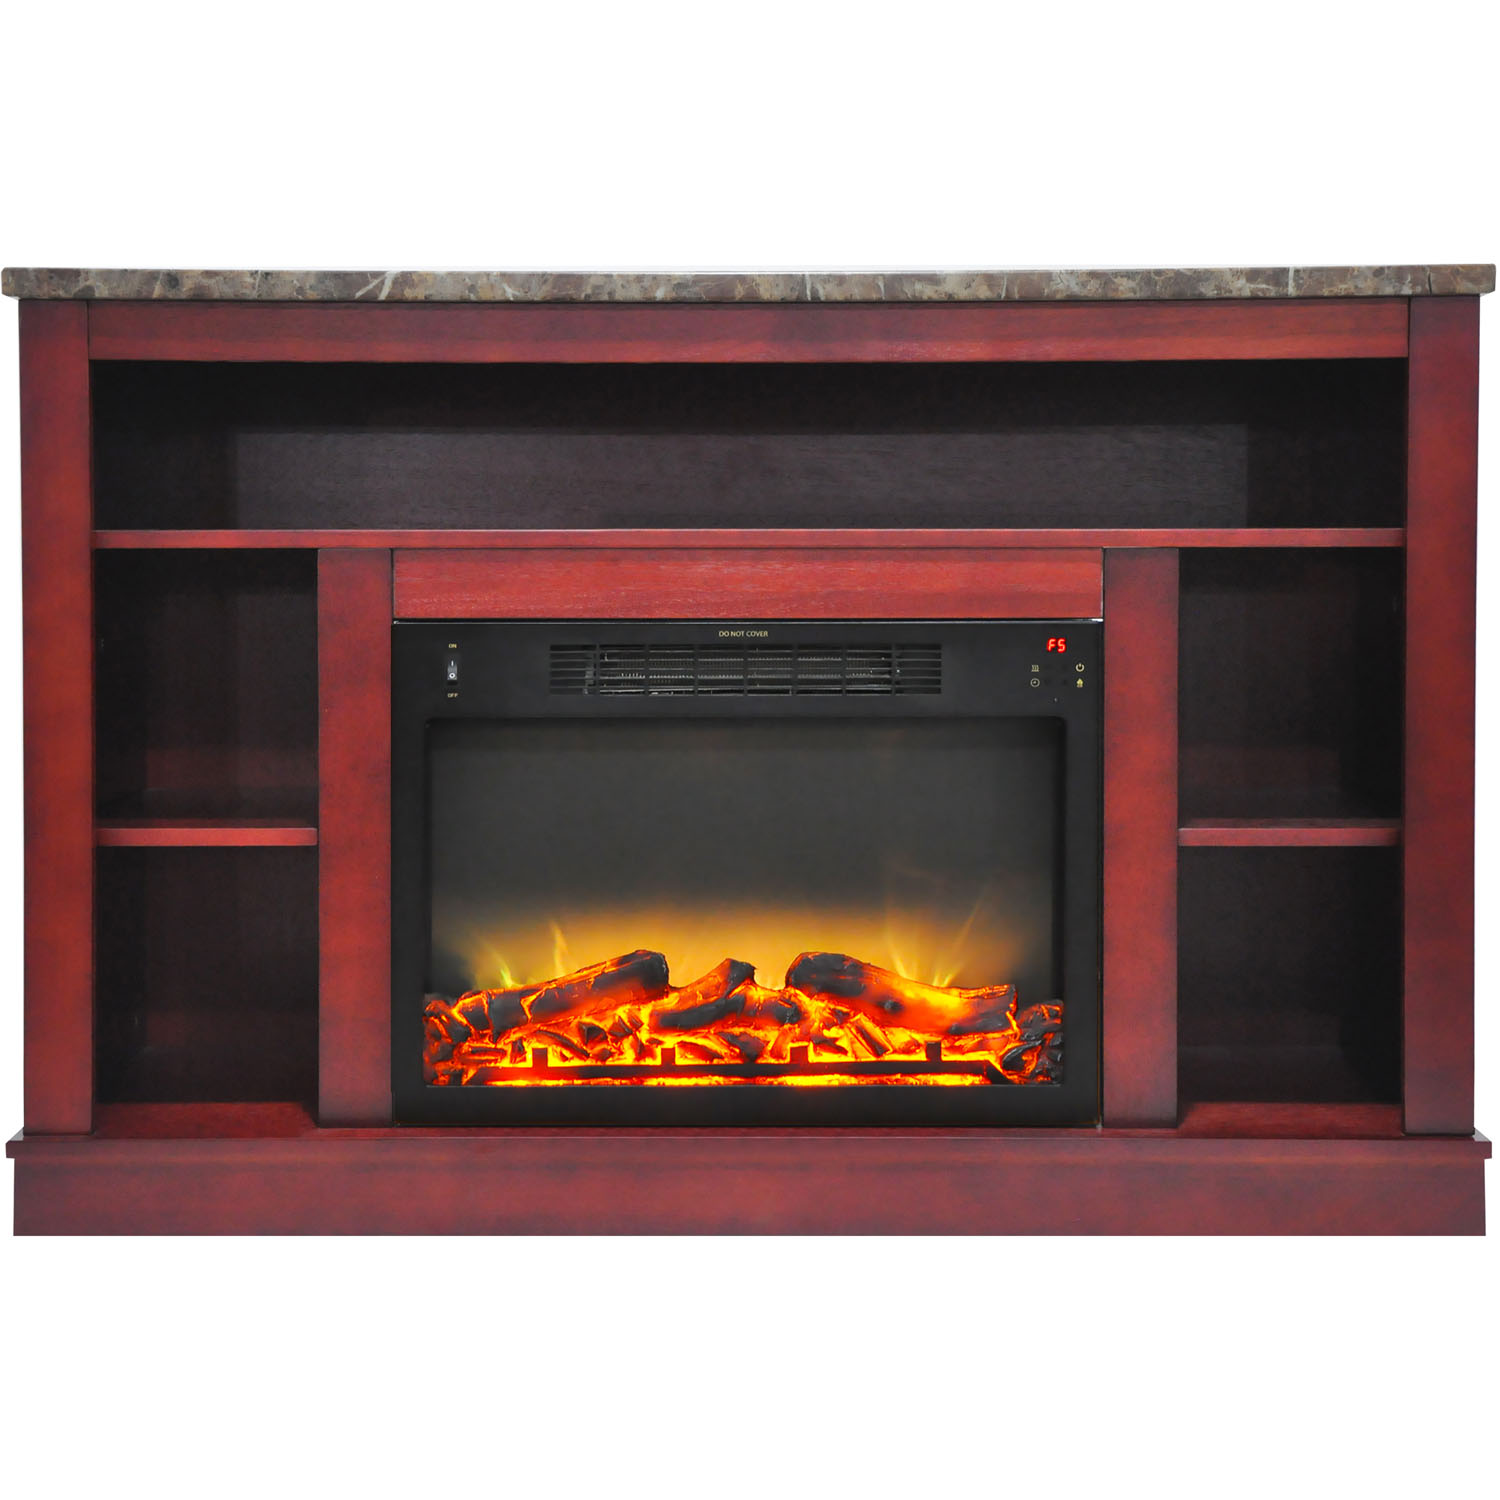 "Cambridge Seville 47"" Electric Fireplace Mantel Heater with Enhanced Log and Grate Display"